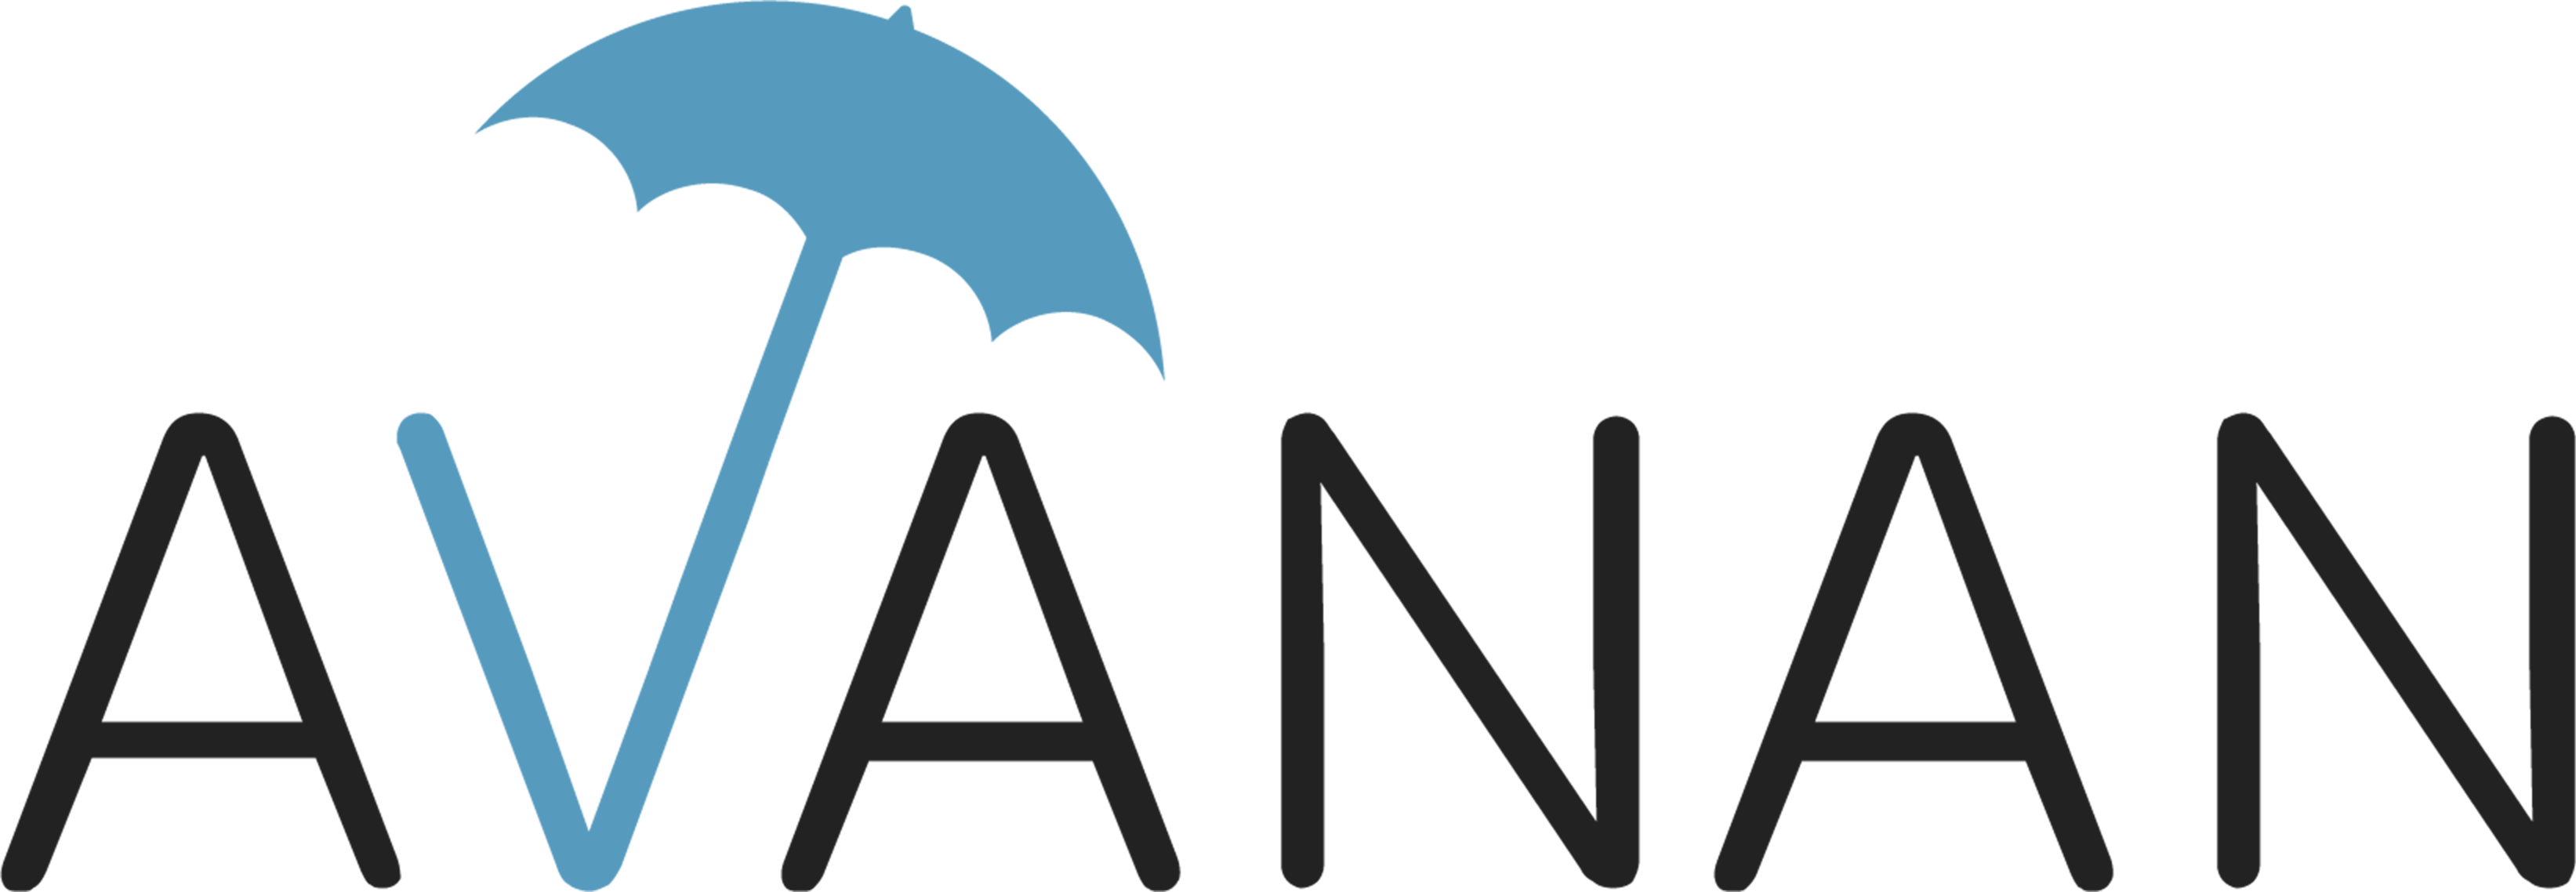 Avanan Ranked as Tenth Fastest Growing Company in the Americas by Financial Times